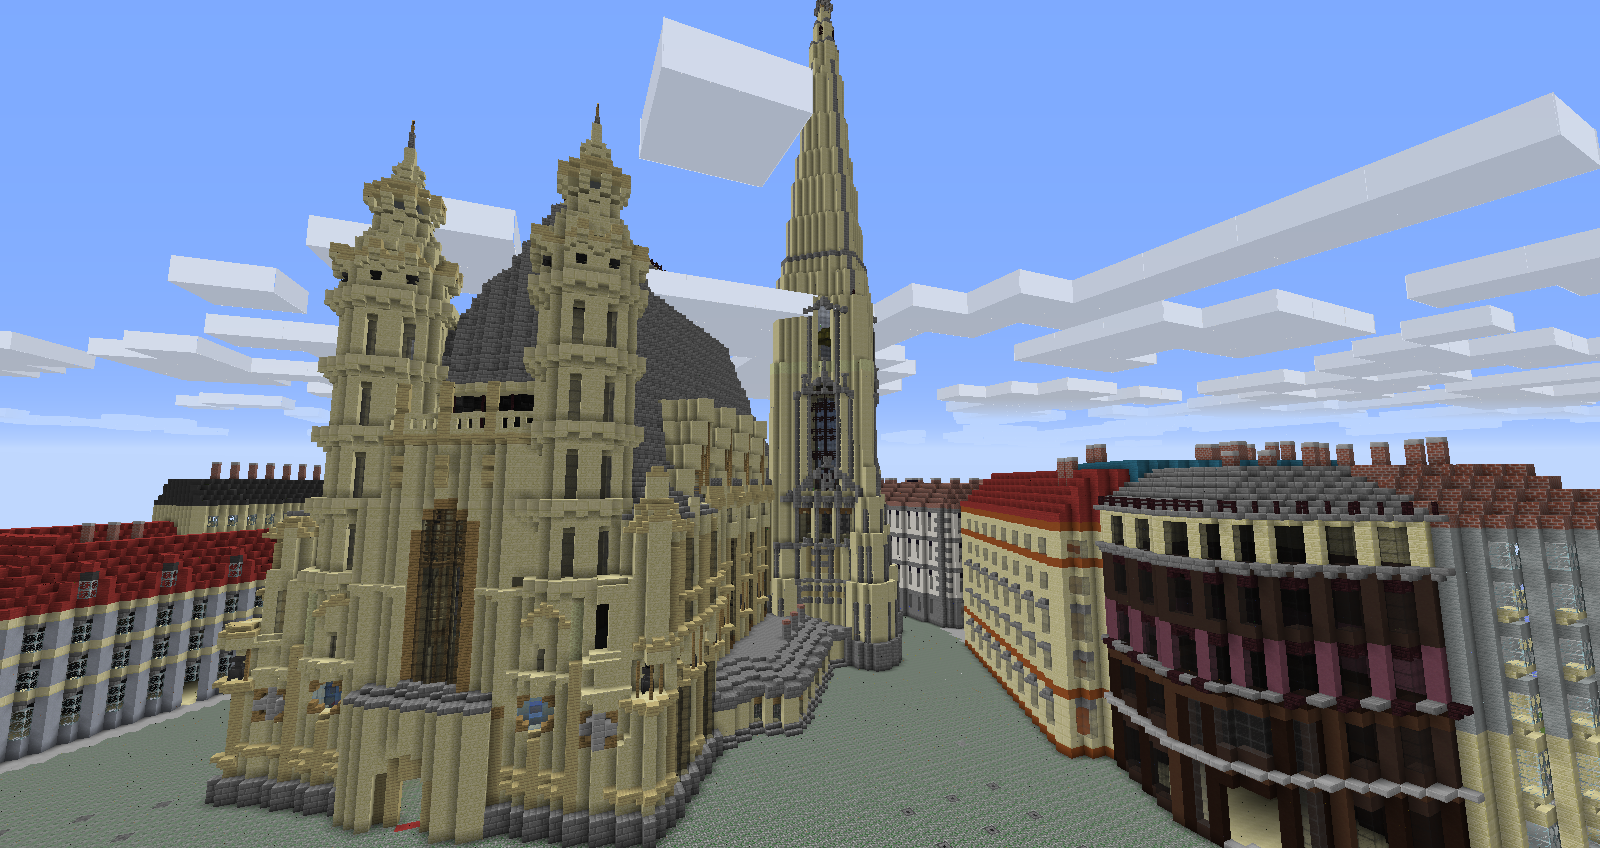 planet minecraft map with Galerie00 on Munich Airport 11 furthermore My Sky House furthermore Taj Mahal 776997 likewise Huge Theatre For Plays further By Blind Metro 2035 Our Future.